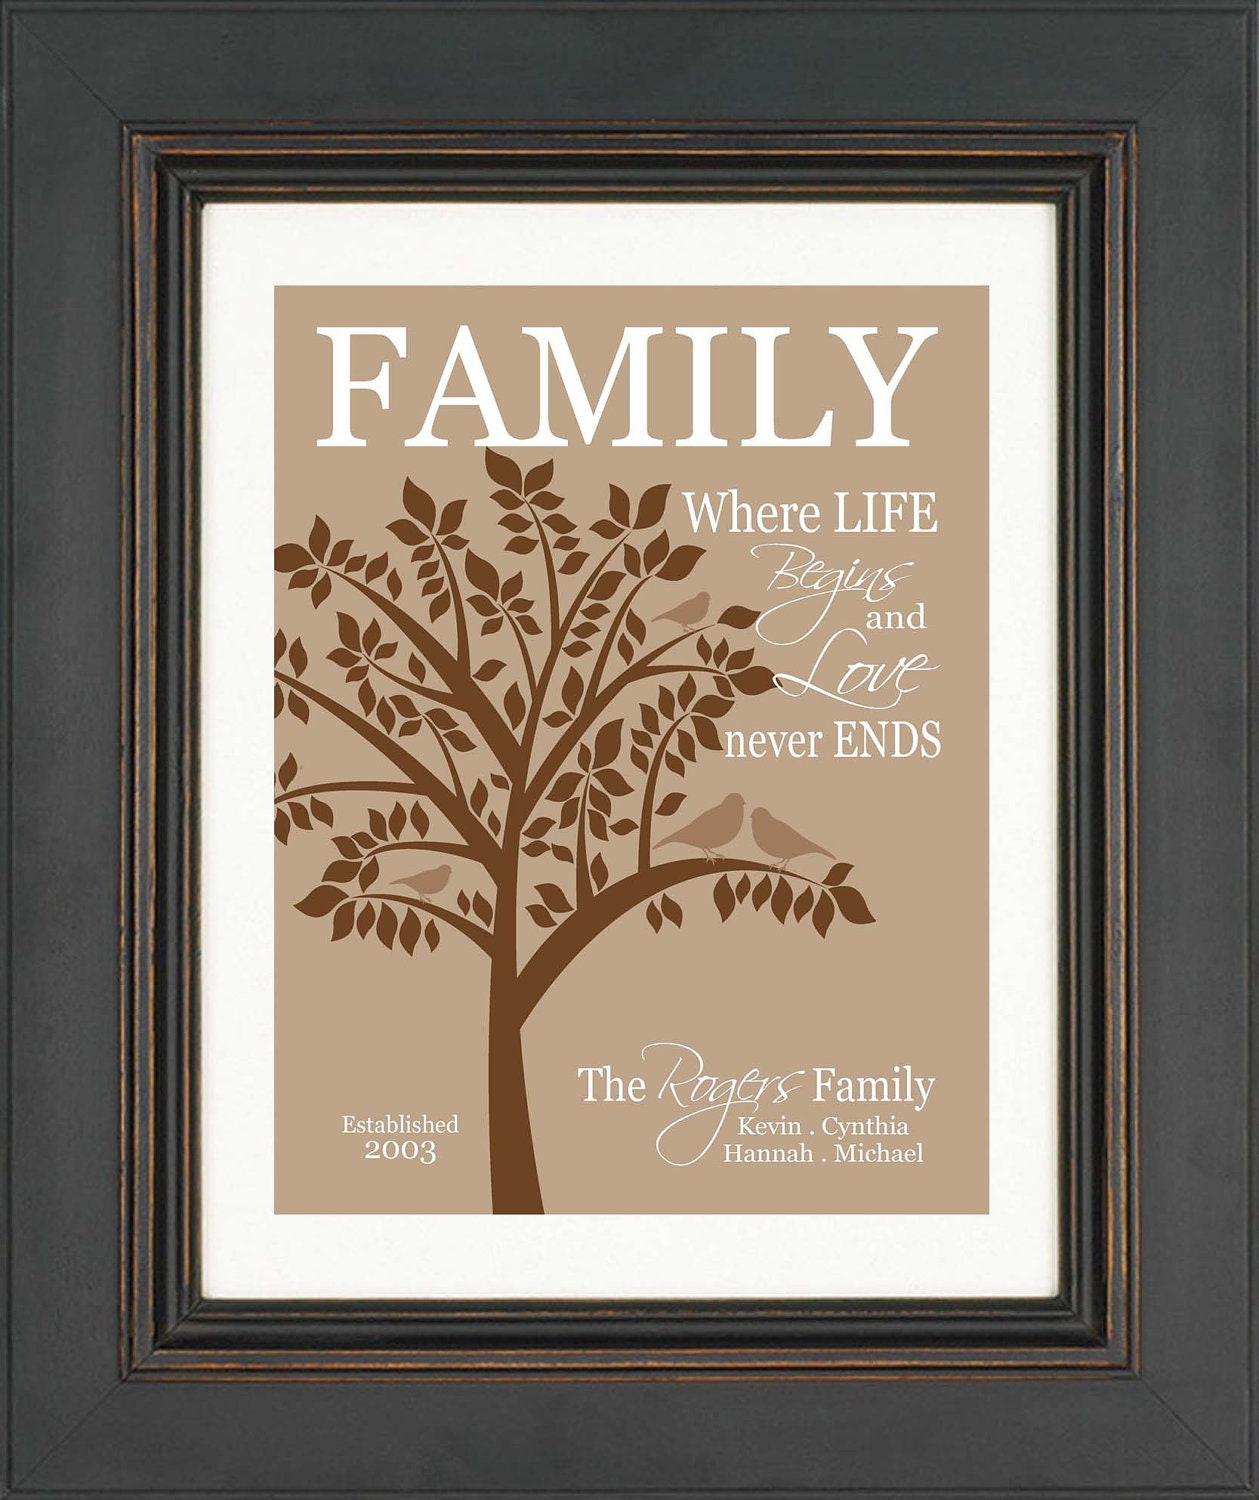 Family tree gift names personalized by kreationsbymarilyn for Family tree gifts personalized